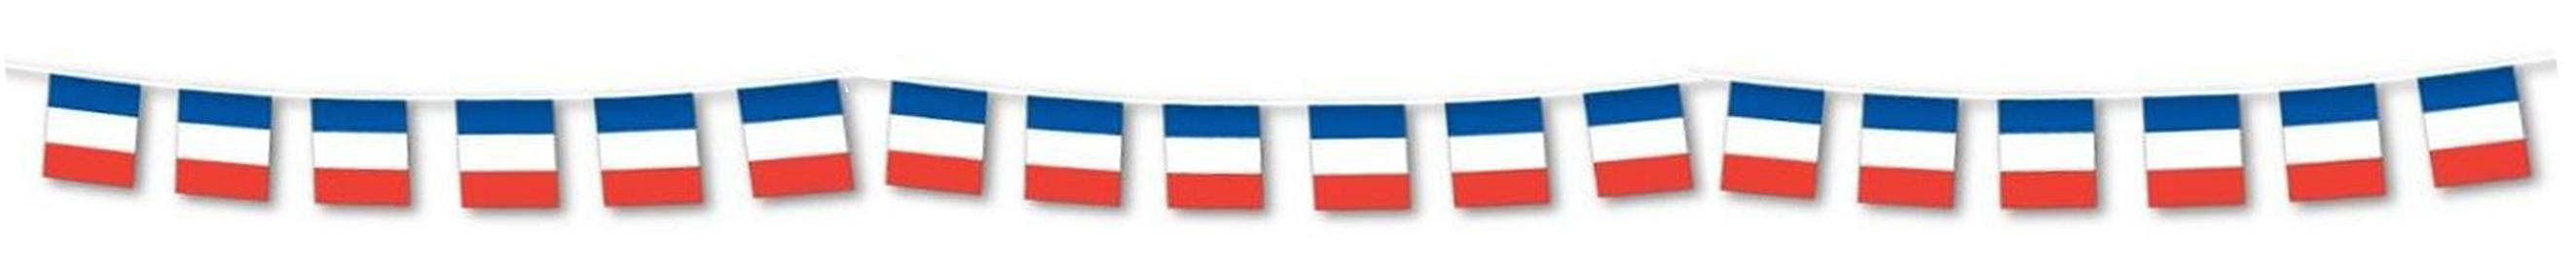 french-bunting-finished.jpg